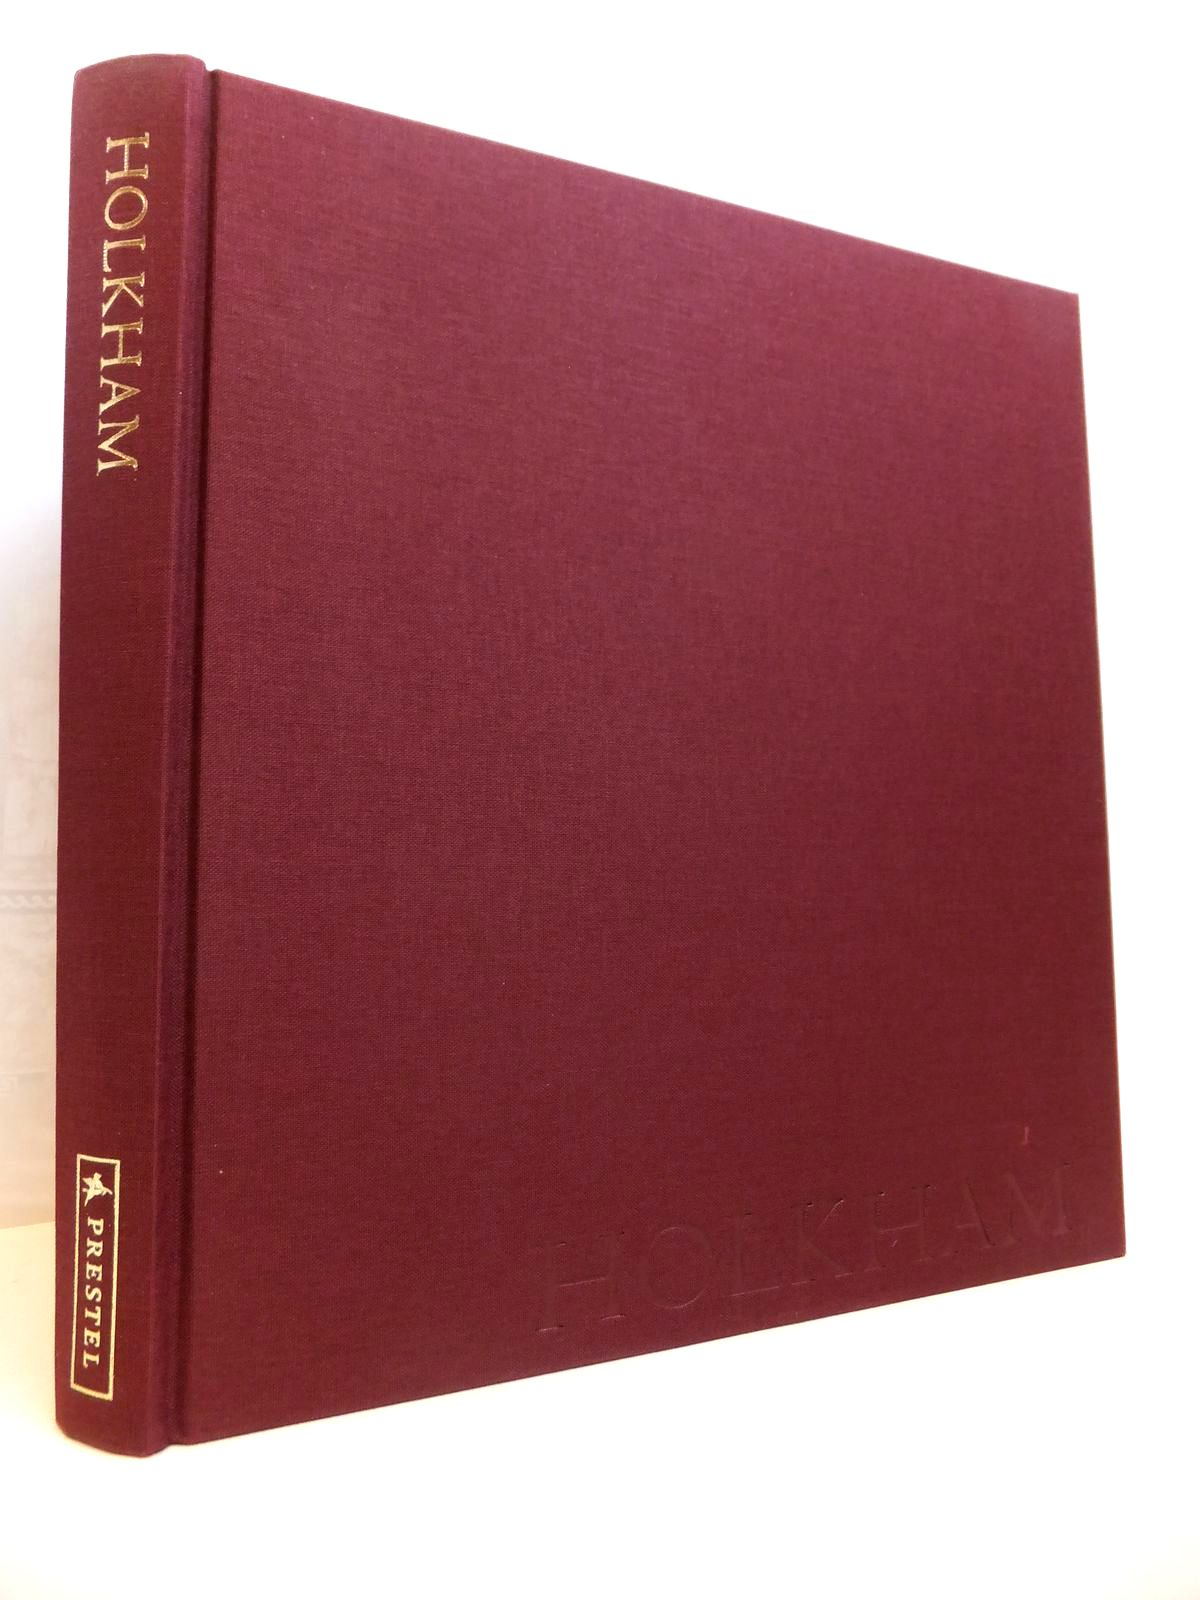 Photo of HOLKHAM written by Schmidt, Leo Keller, Christian Feversham, Polly published by Prestel (STOCK CODE: 1812578)  for sale by Stella & Rose's Books